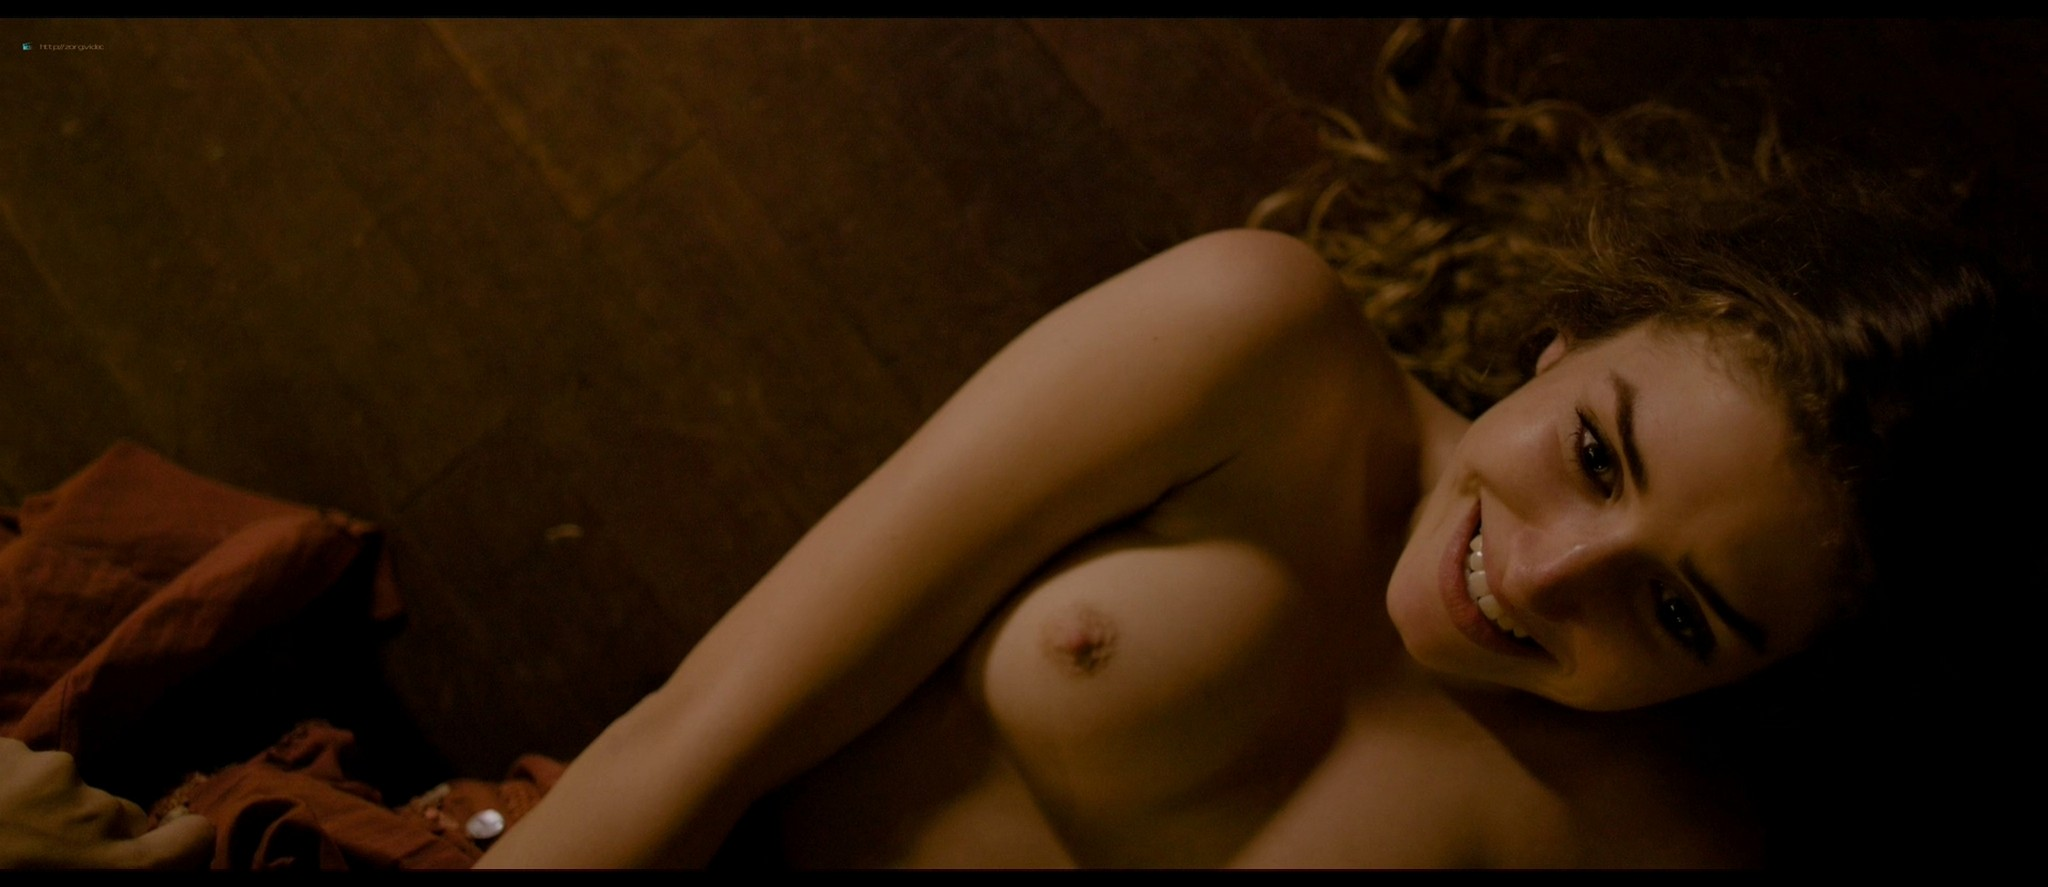 Morgan Taylor Campbell nude full frontal Brandi Alexander sexy - The Orchard (2016) HD 1080p Web (8)